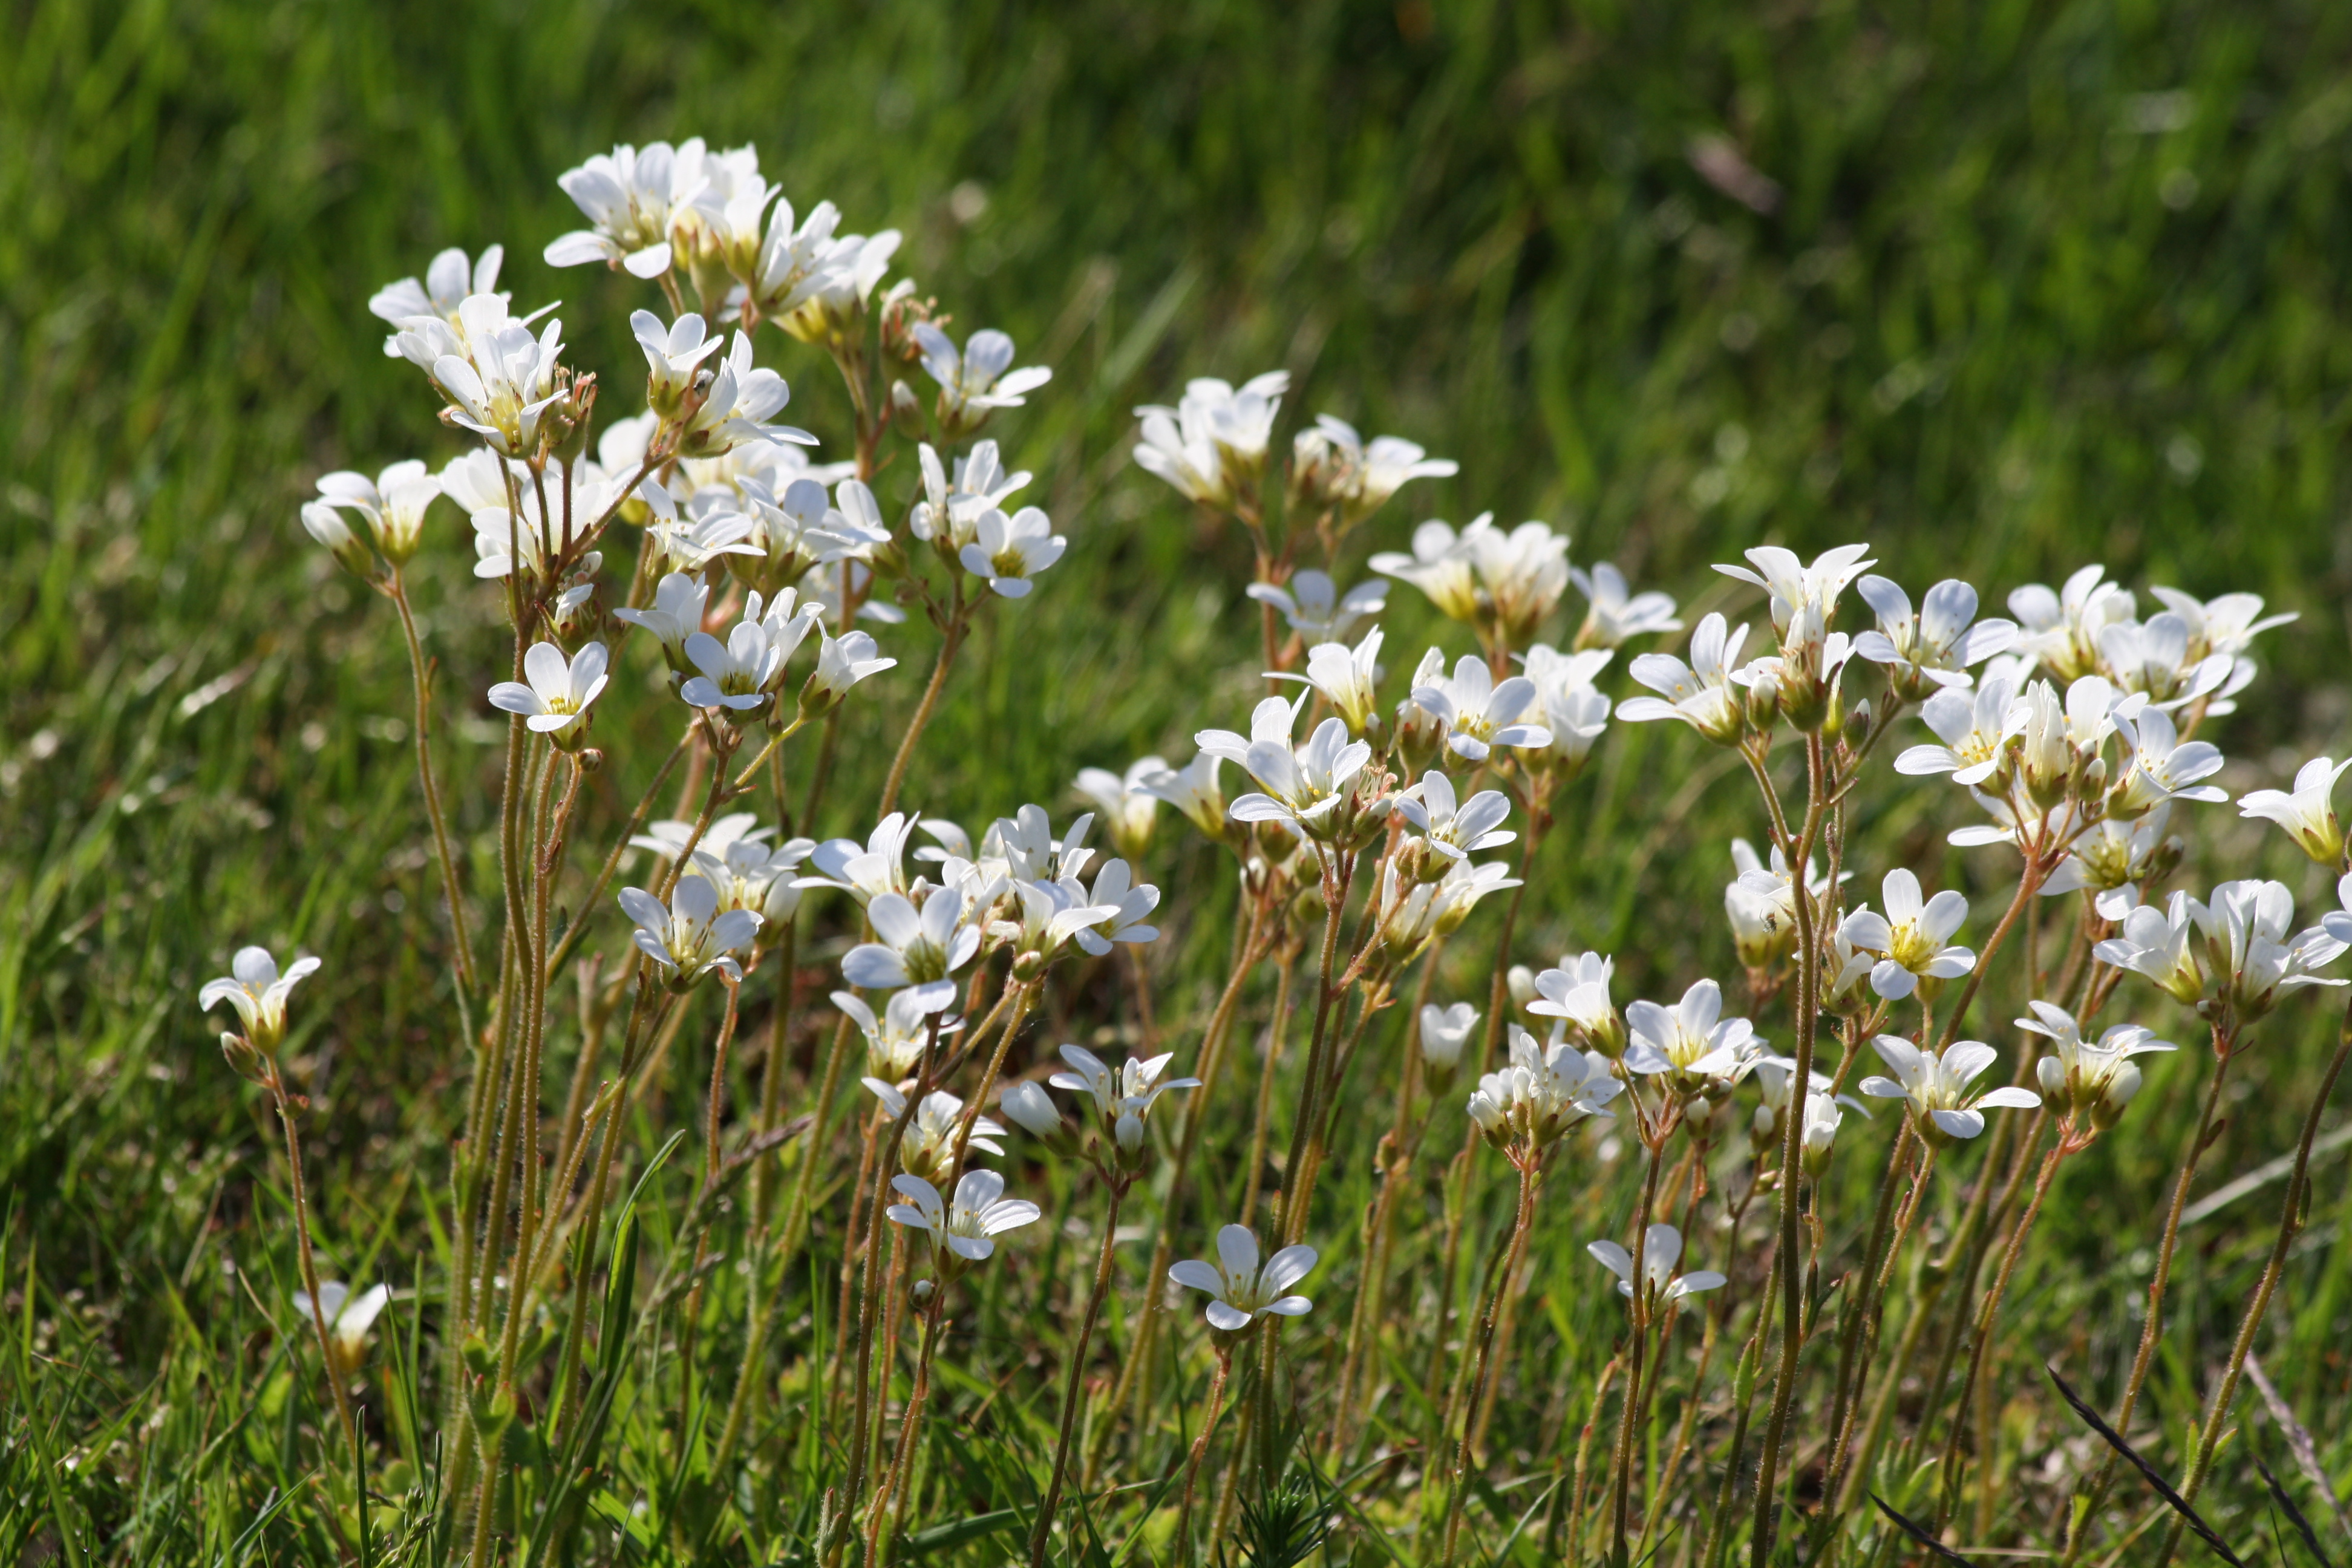 Todays flower no 1 meadow saxophrage mandelblomma ann novek the delicate snow white five petalled flowers and long stalked kidney shaped leaves are distinctive features of the meadow saxifrage and are not shared mightylinksfo